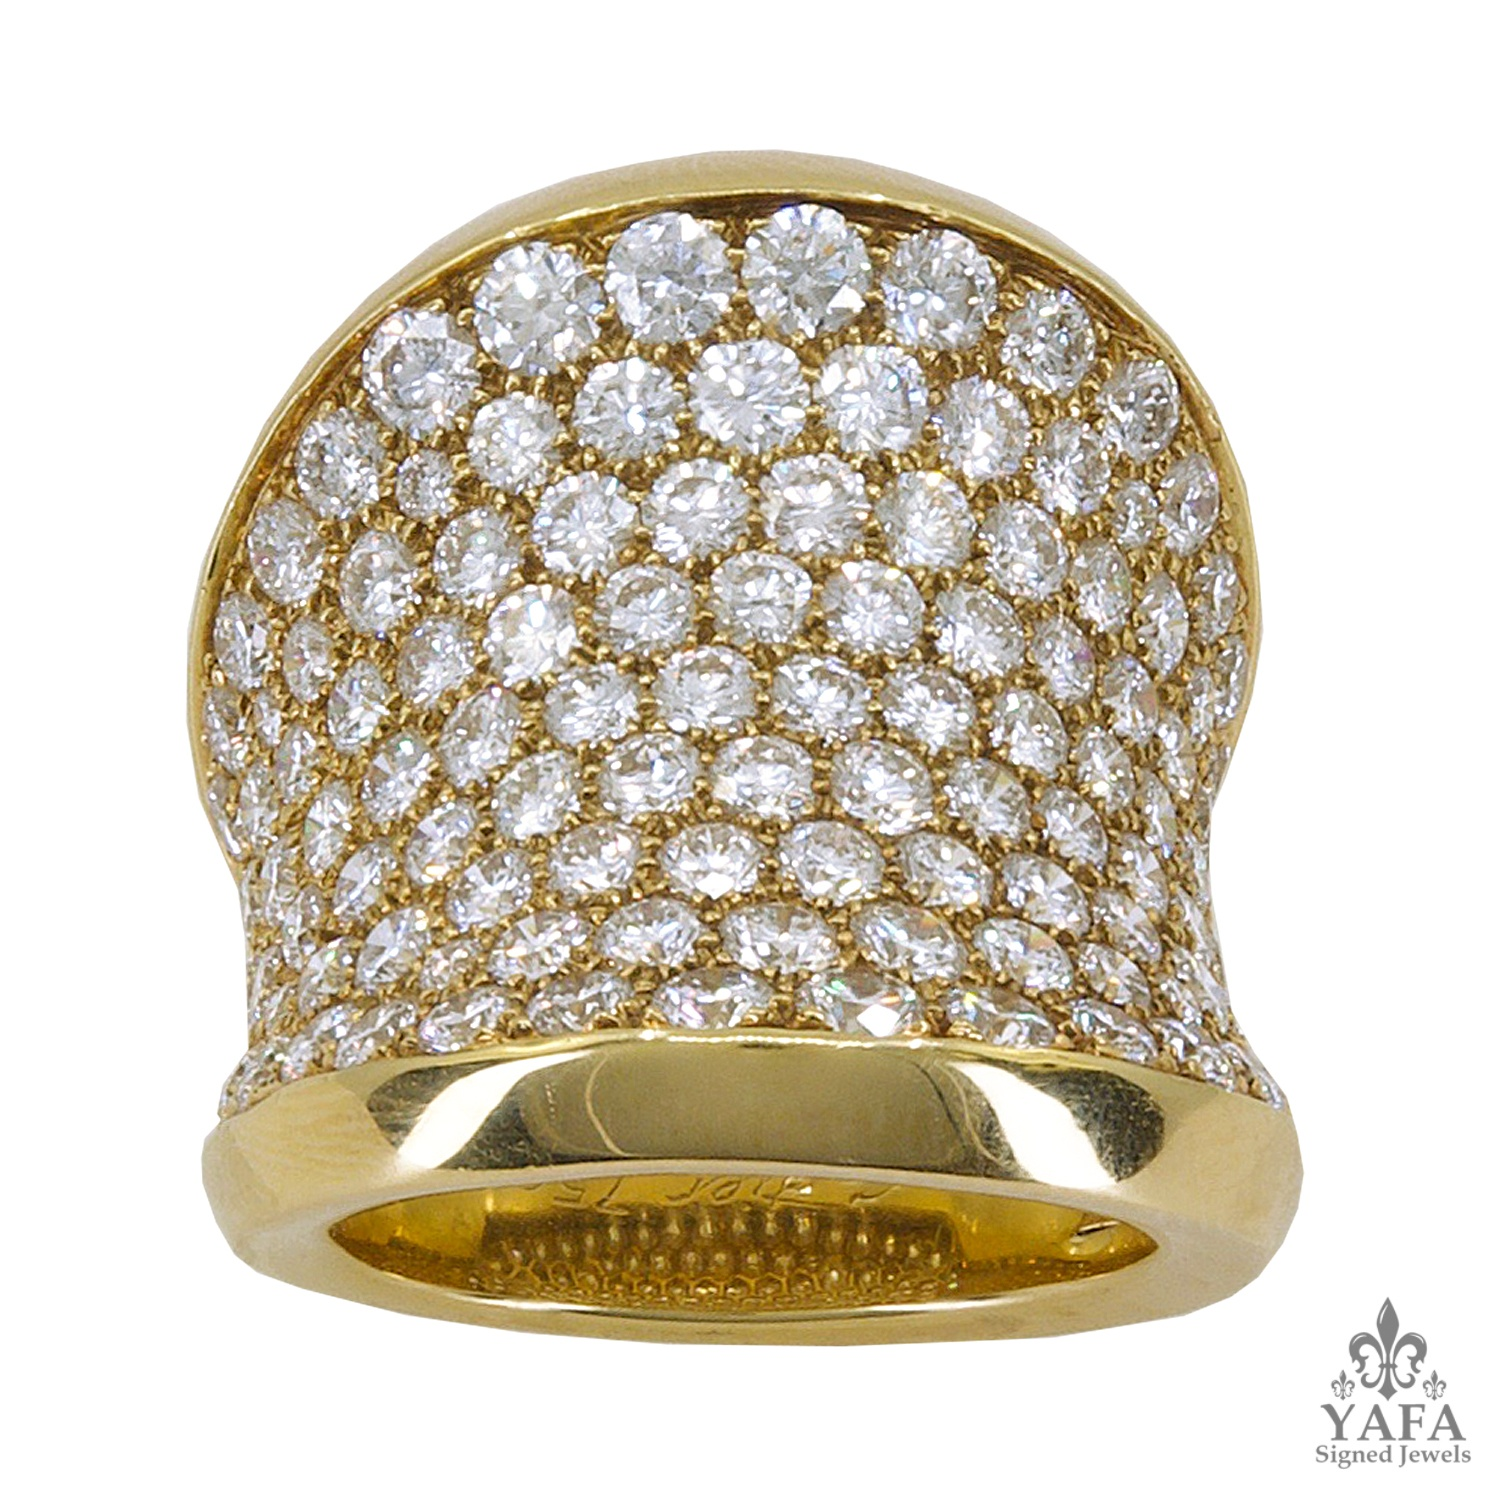 CARTIER Chalice Diamond Ring Gold